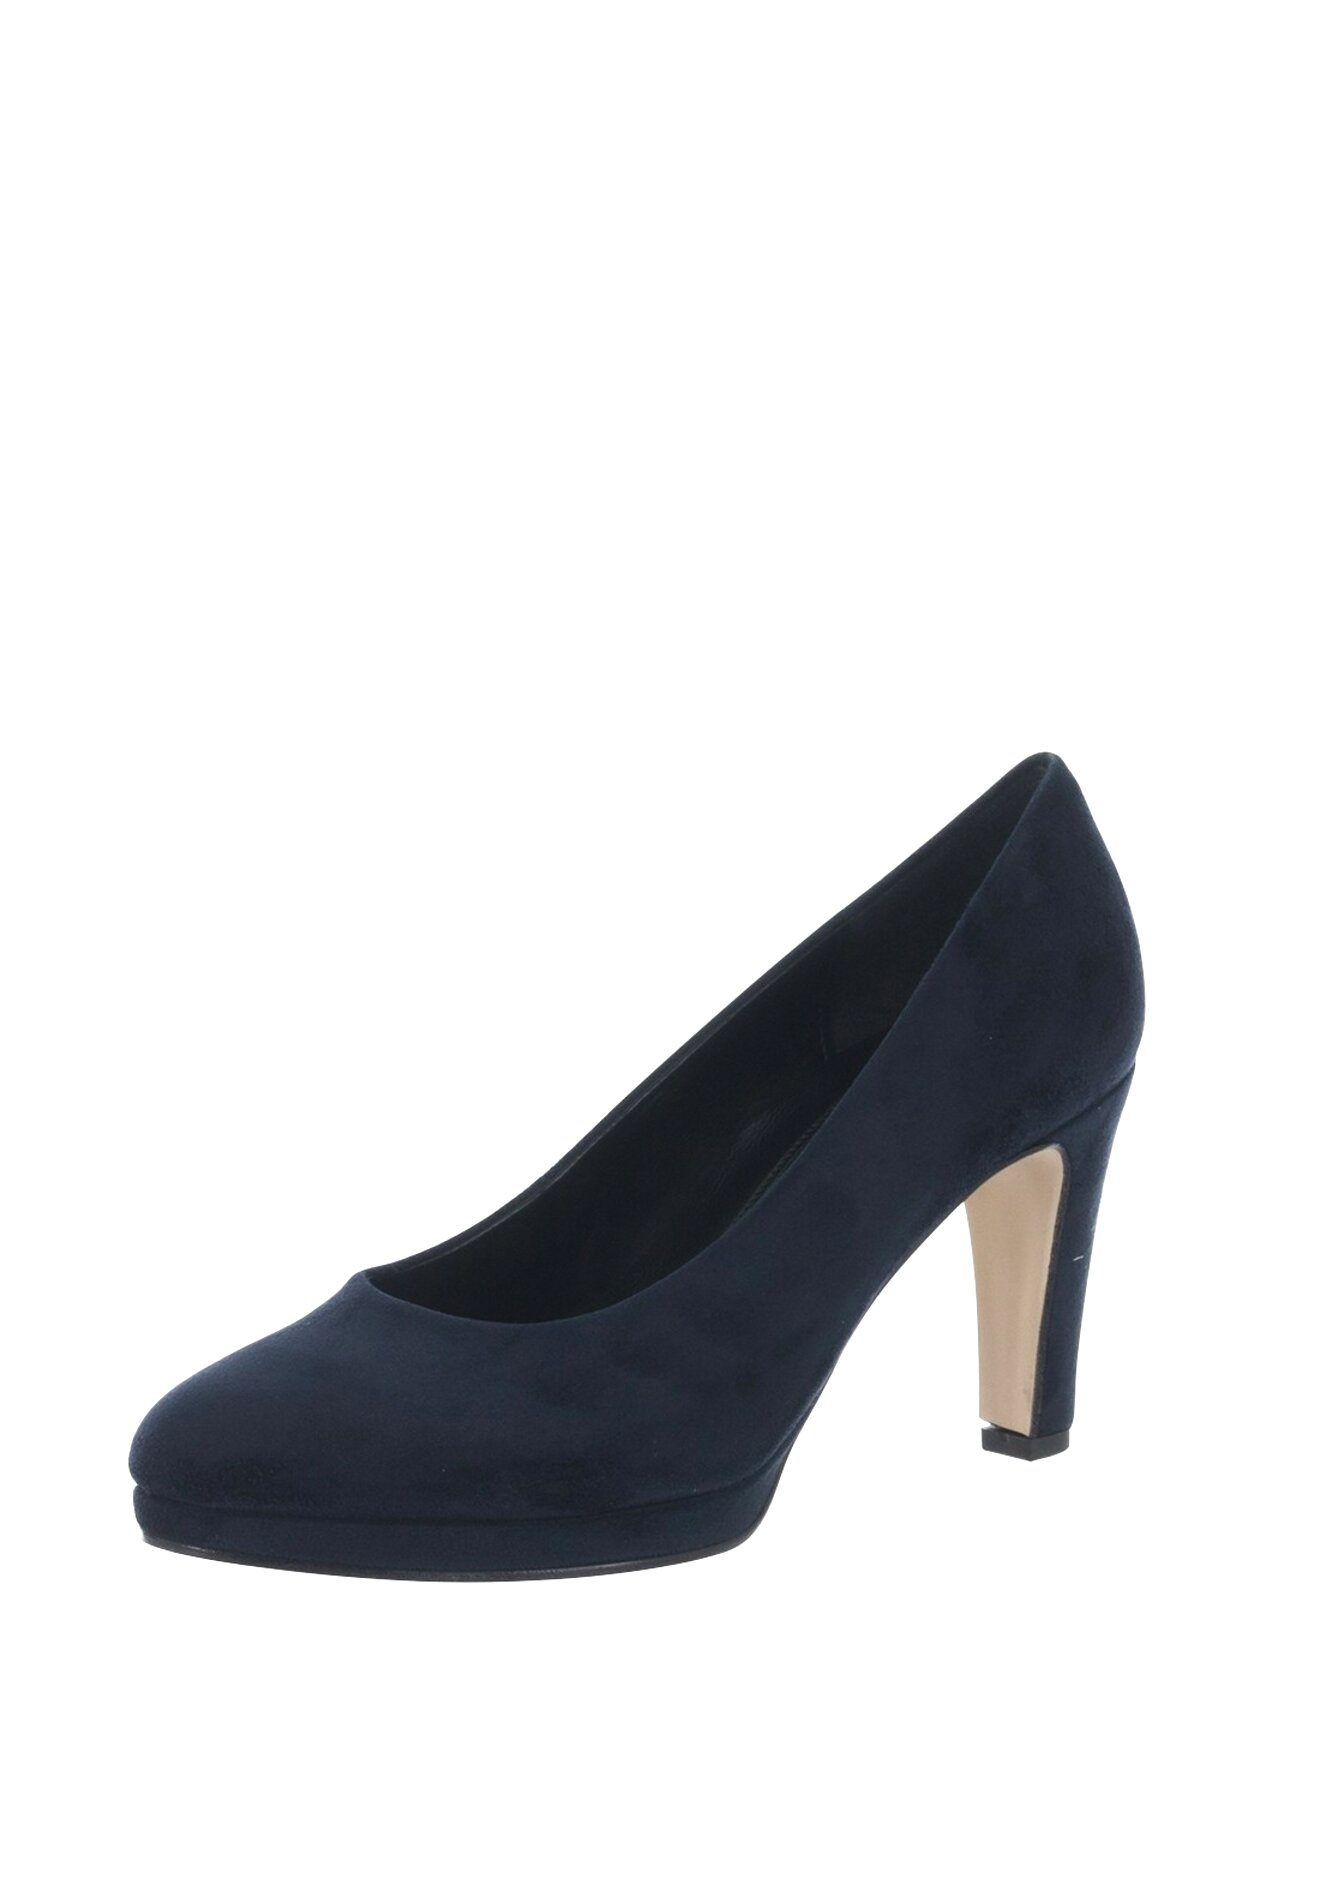 gabor navy shoes for sale